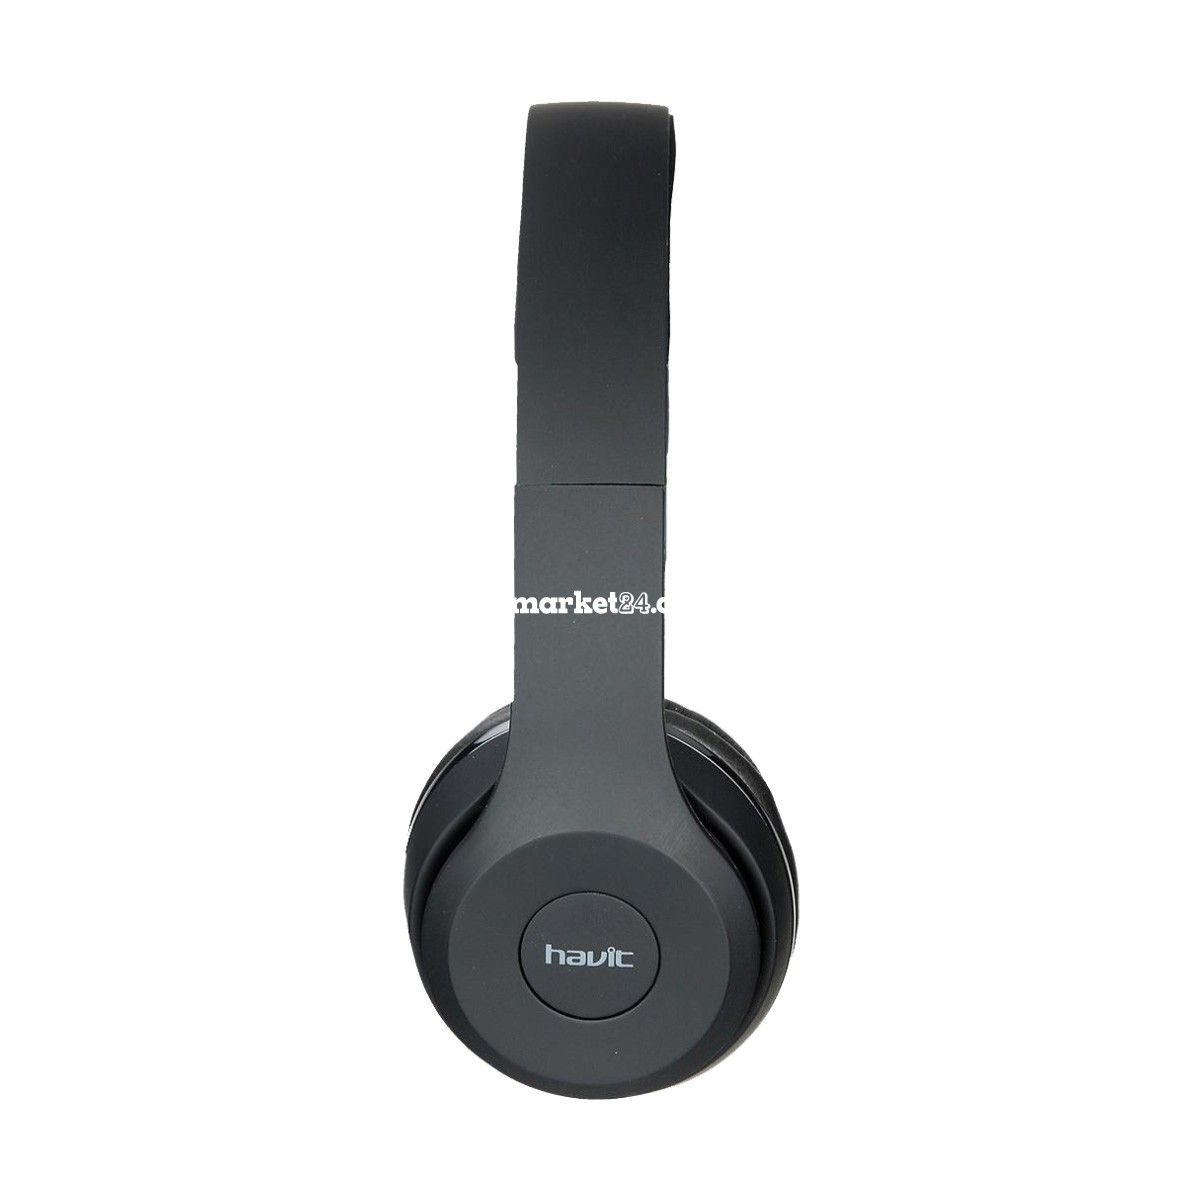 Havit H2575bt Black Bluetooth Head Phone Price In Bangladesh For Sell With Images Headphones Mobile Phone Accessories